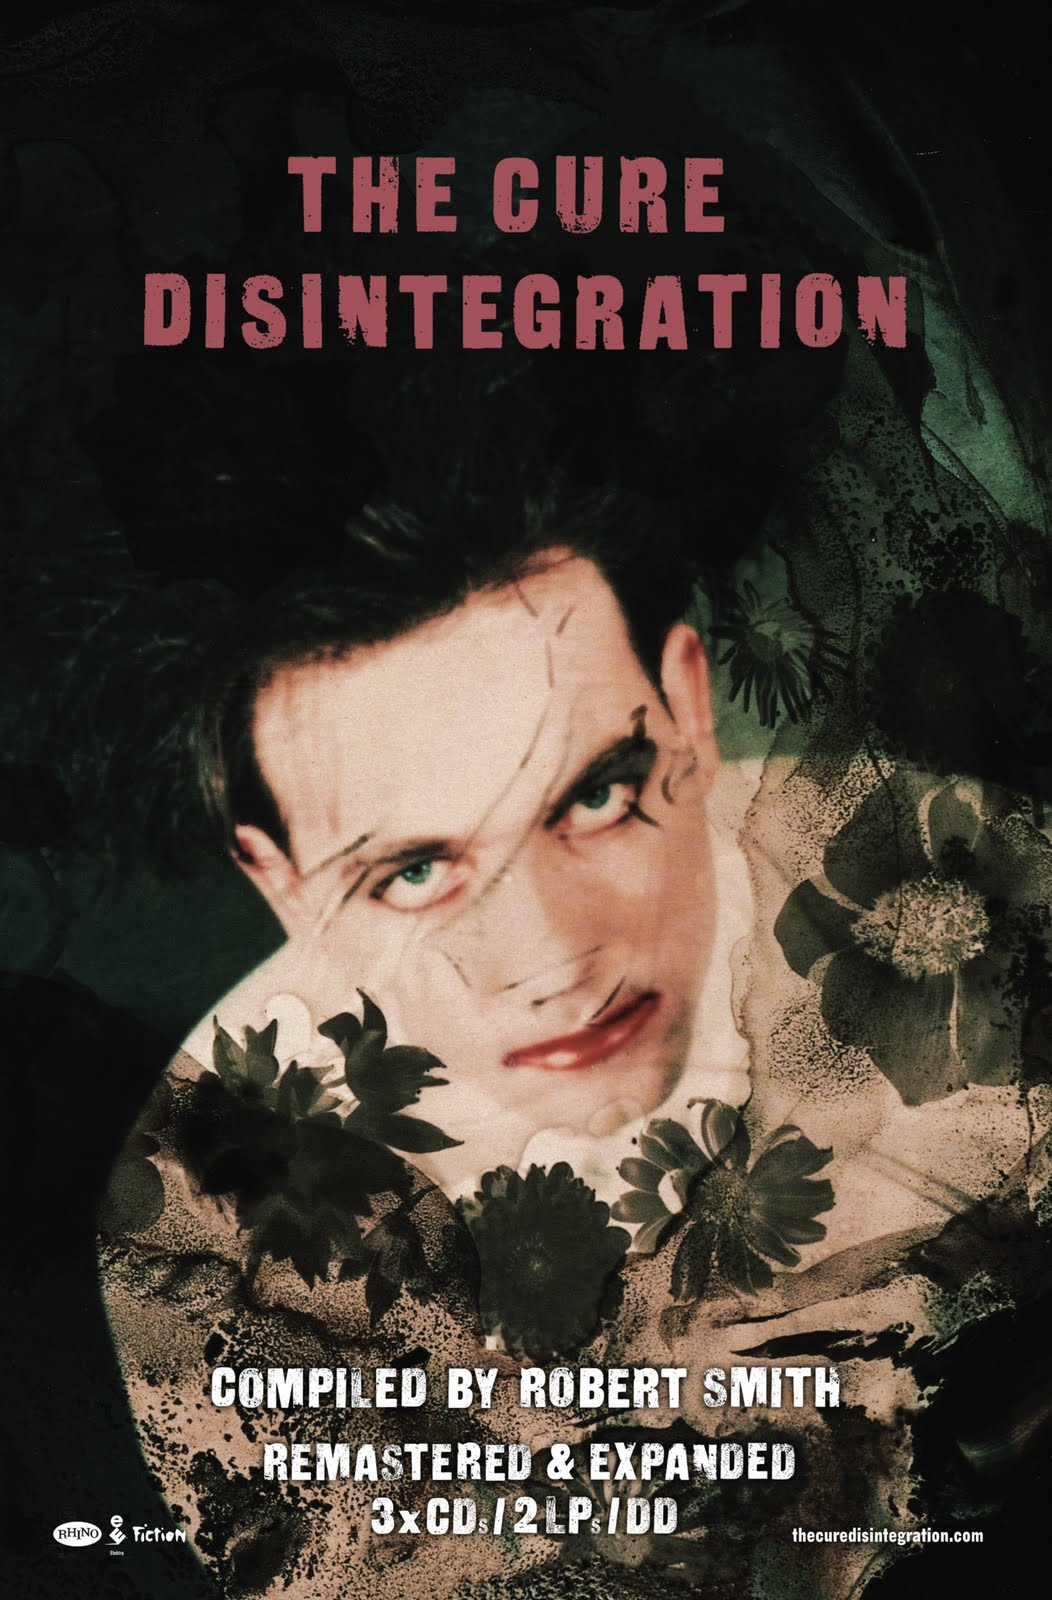 Contest: Win The Cure's 3CD 'Disintegration: Deluxe Edition,' promo sampler and poster